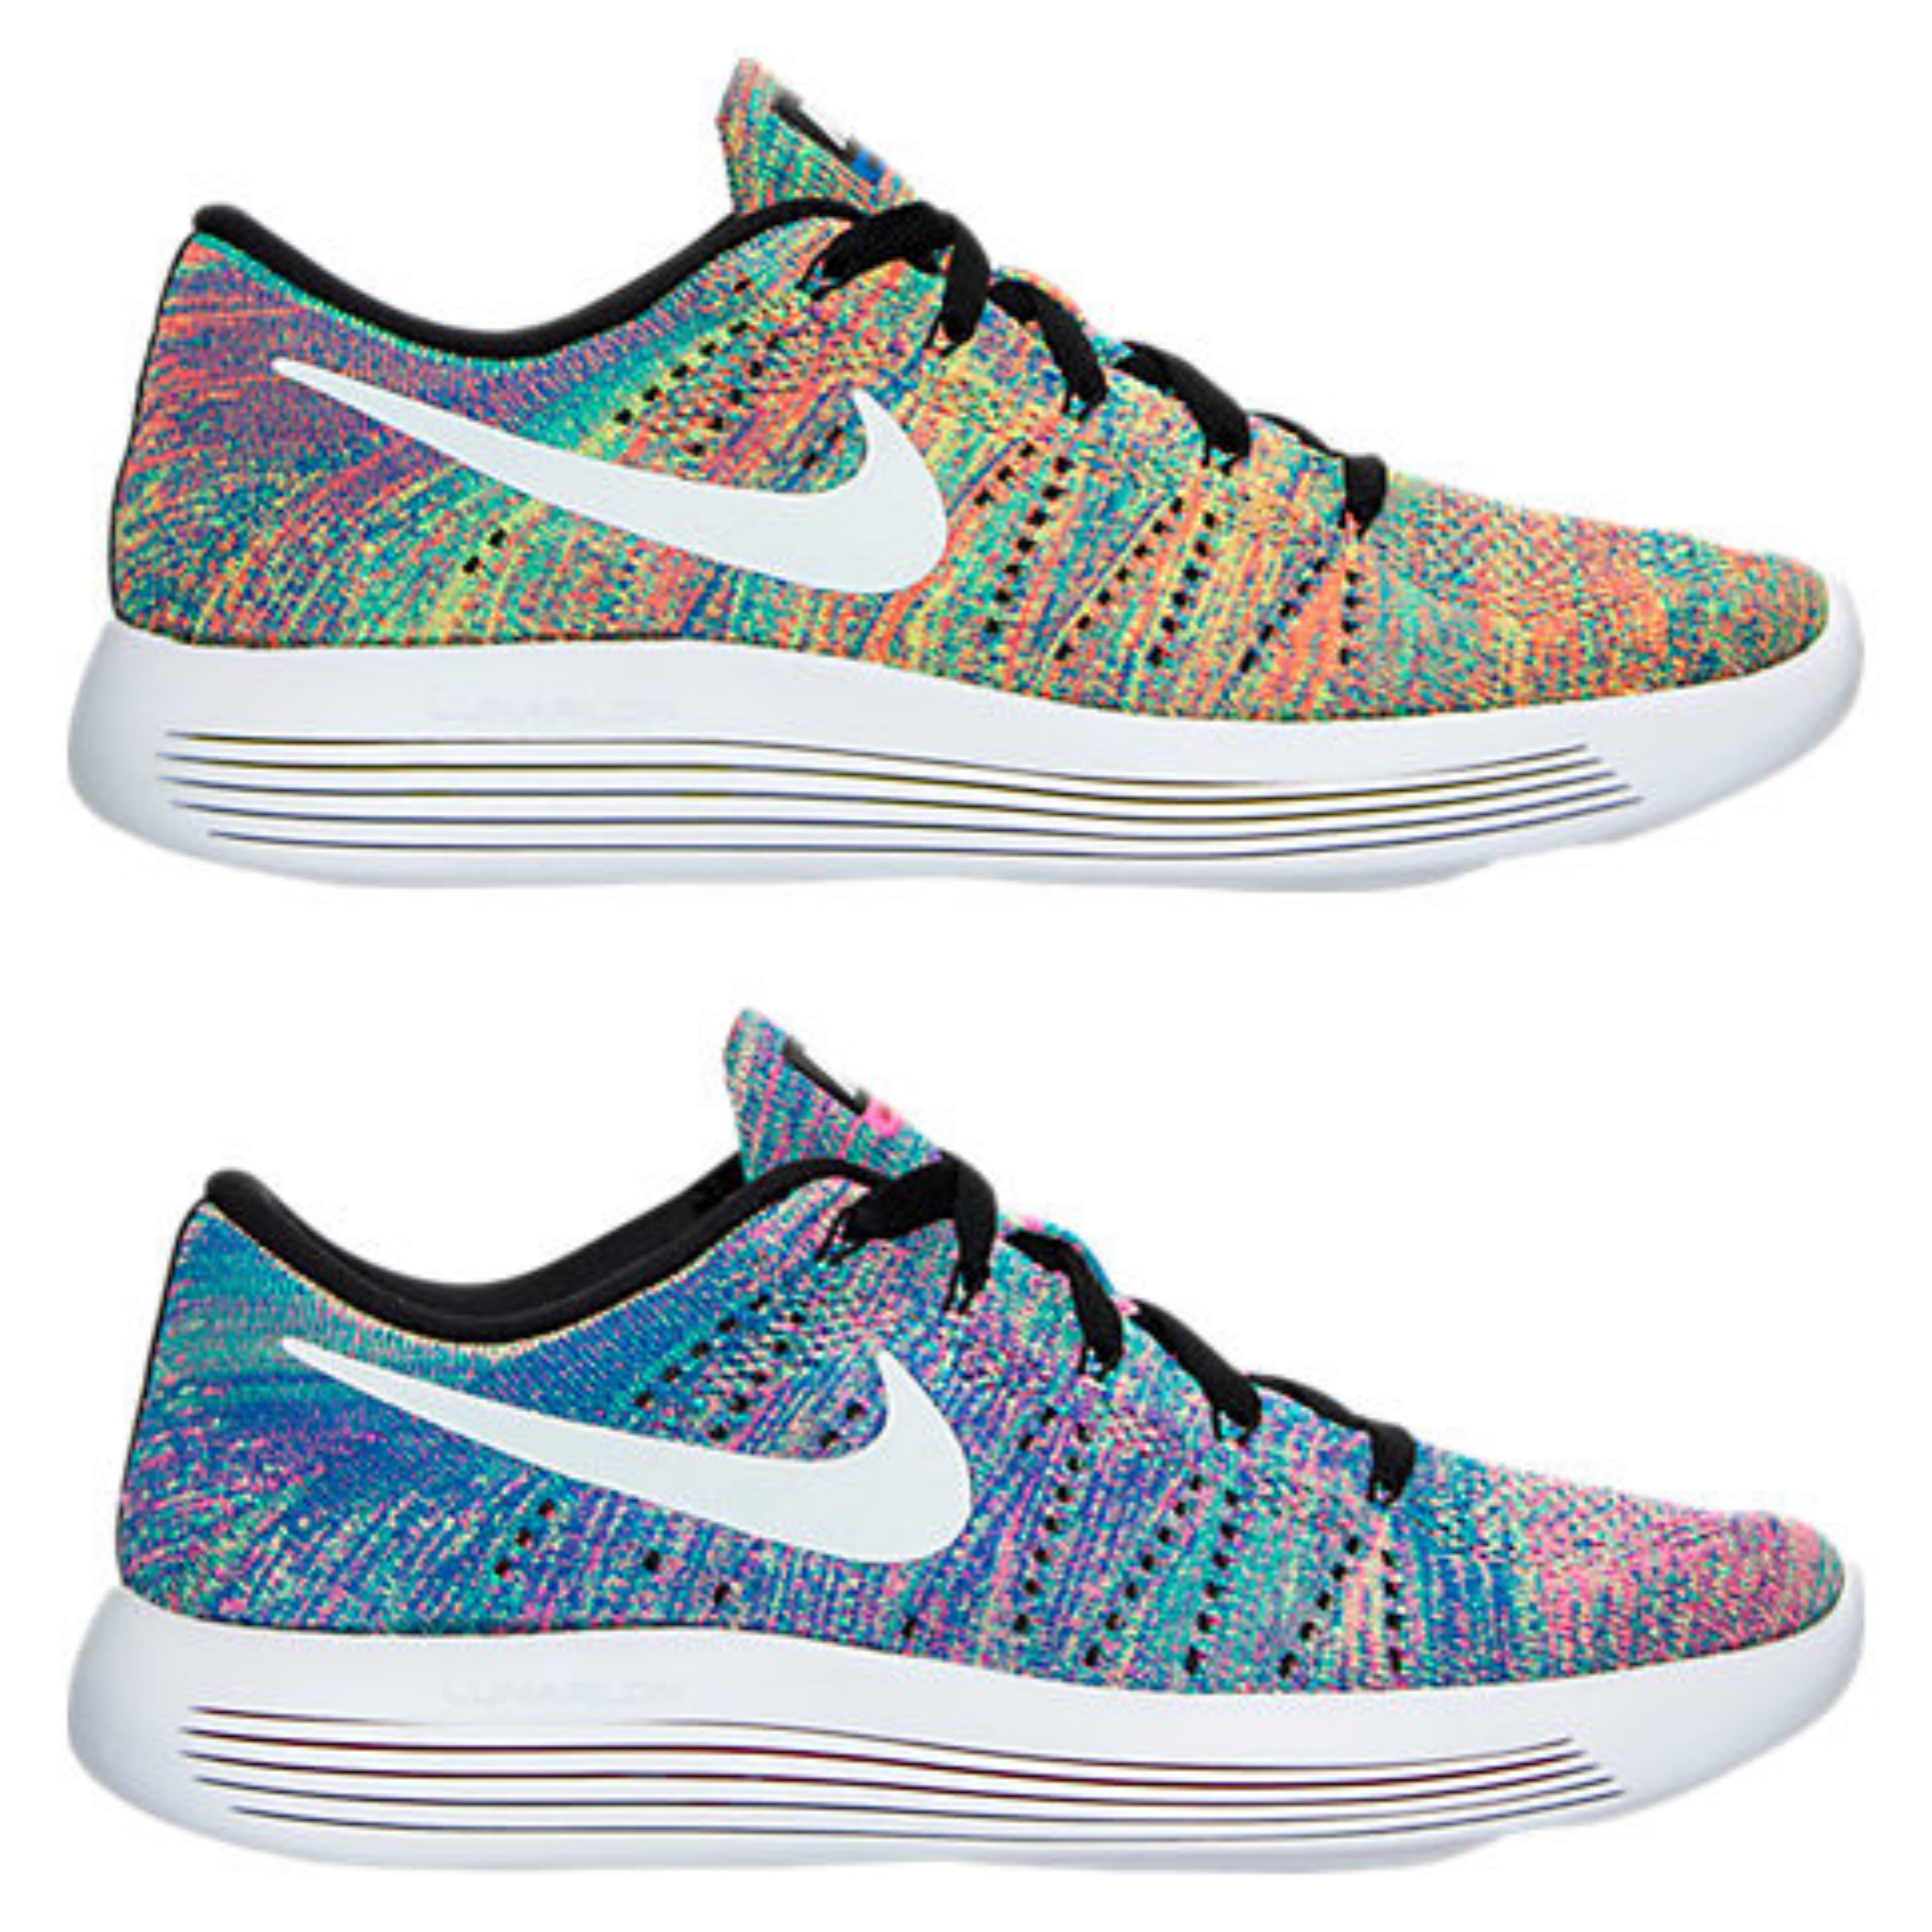 buy popular 9318b 0bc0b nike lunarepic low flyknit colorways